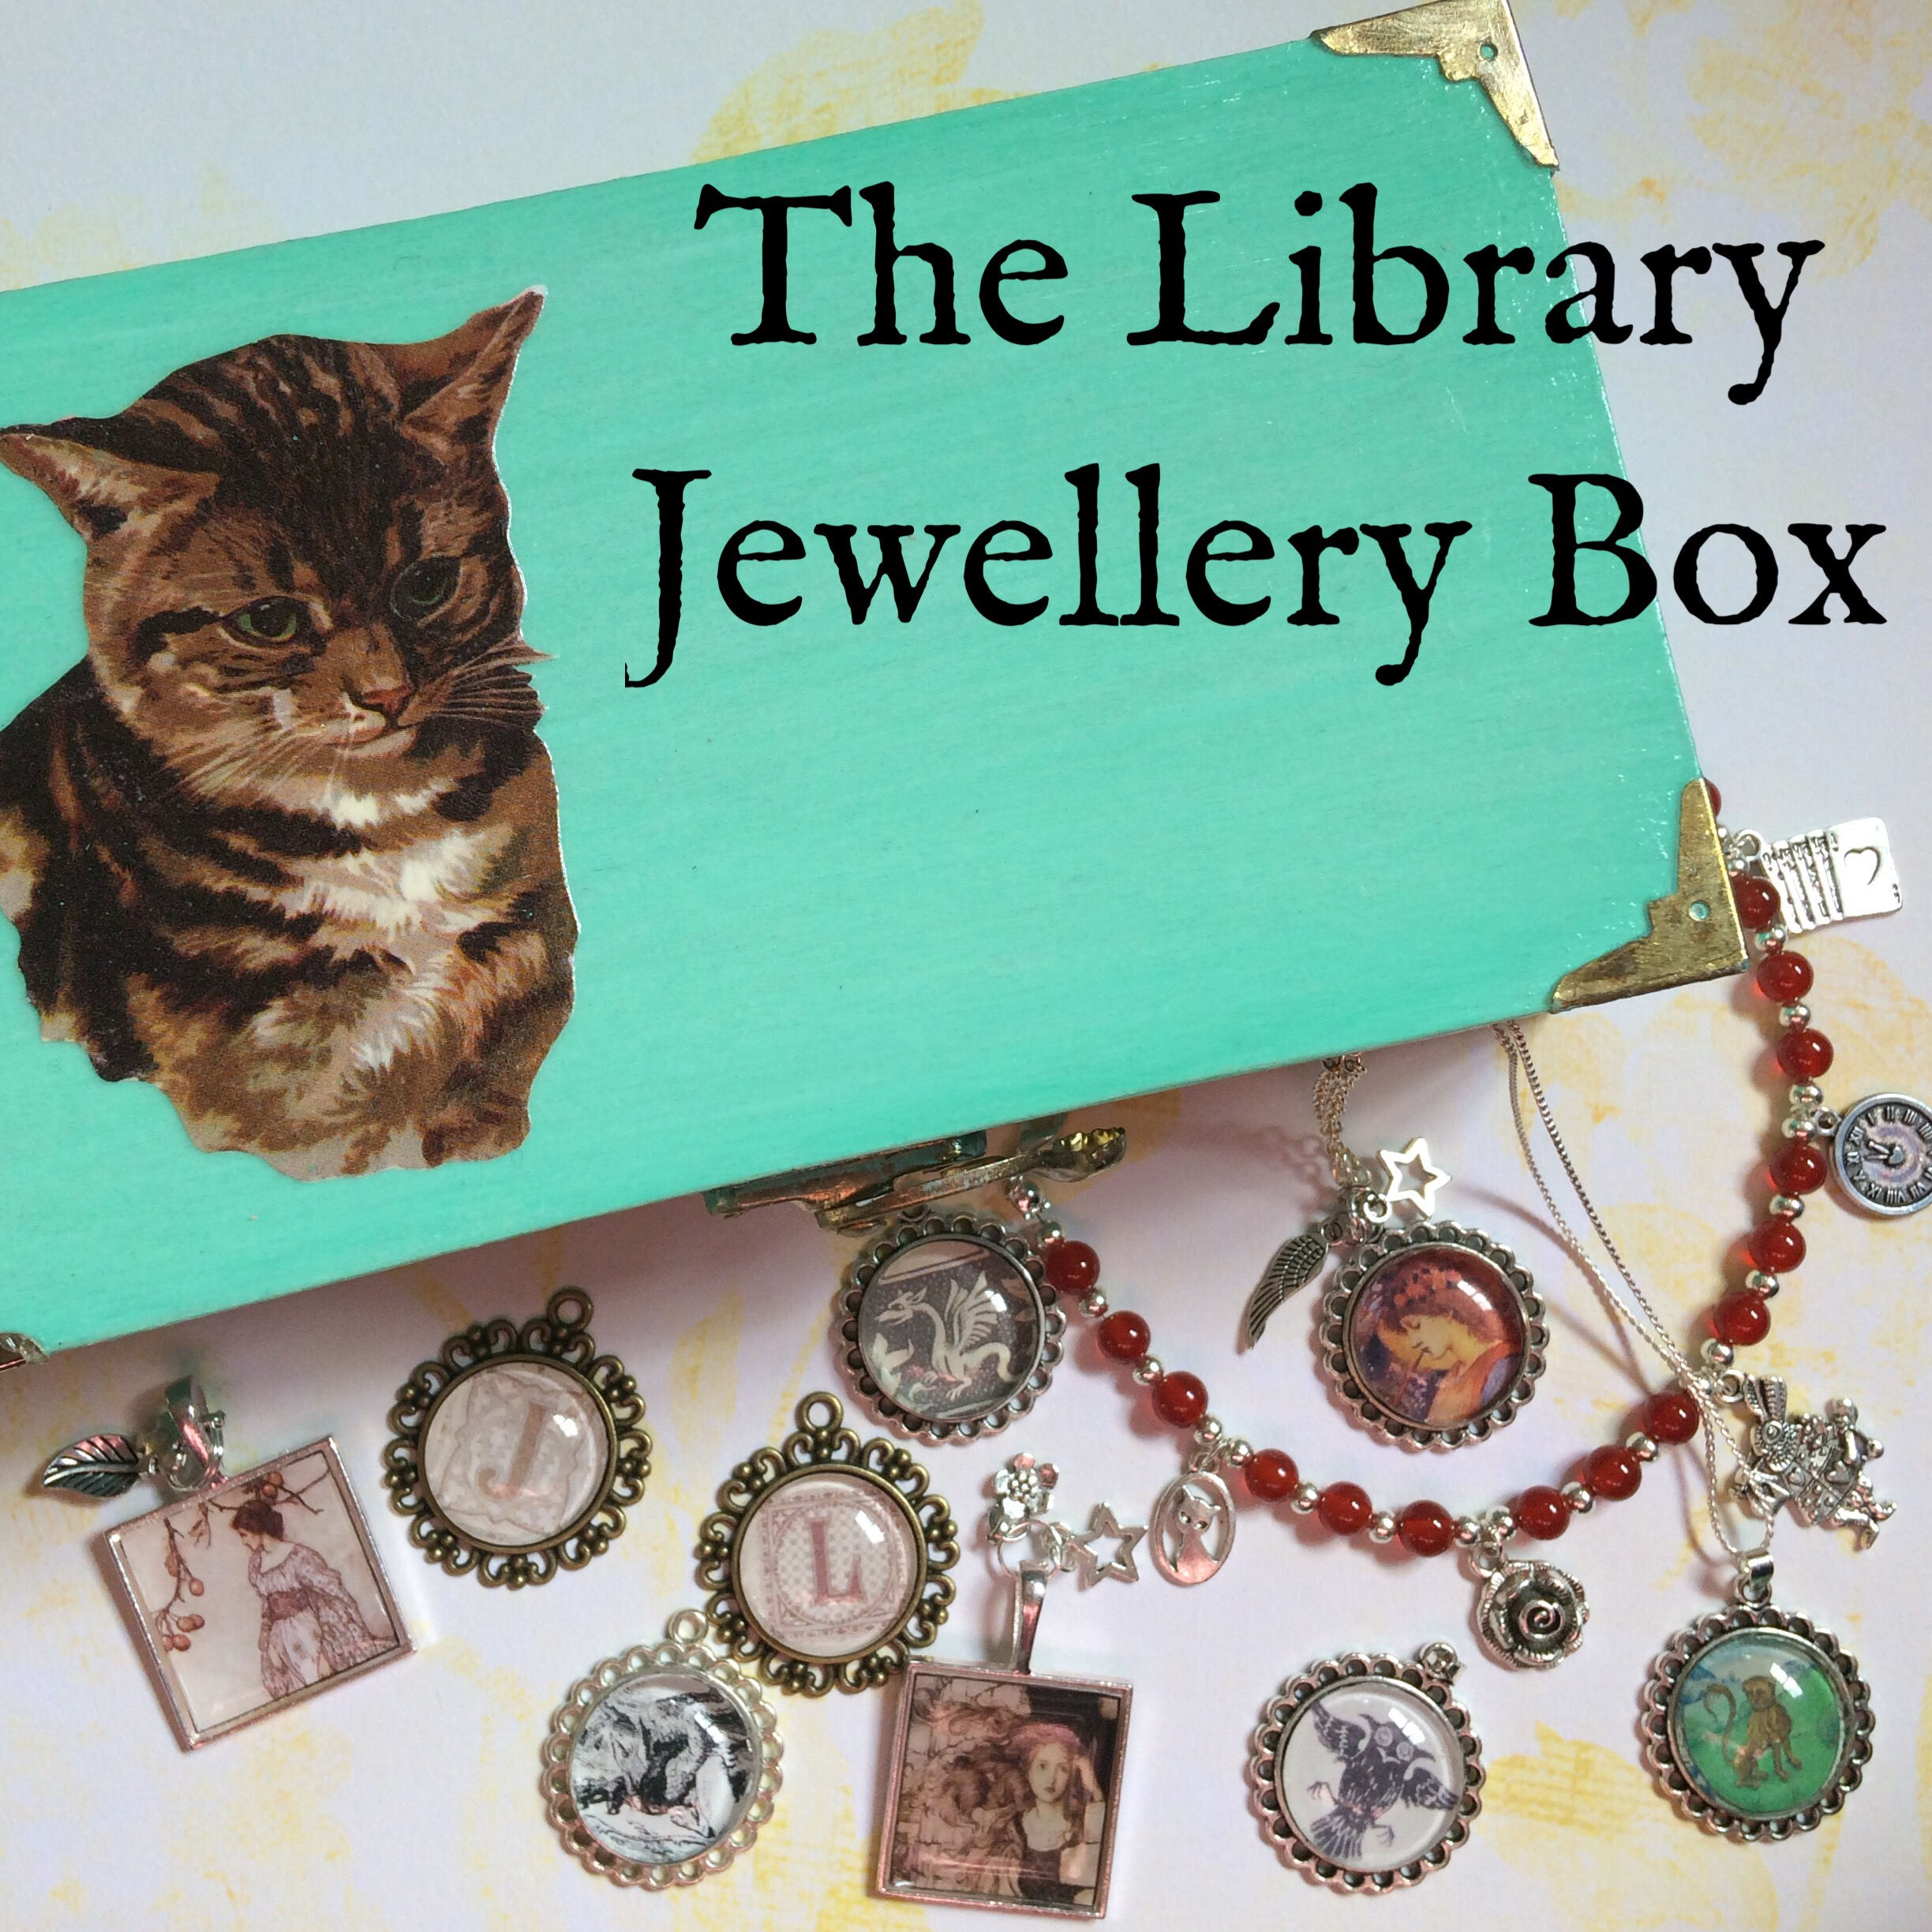 The Library Jewellery Box